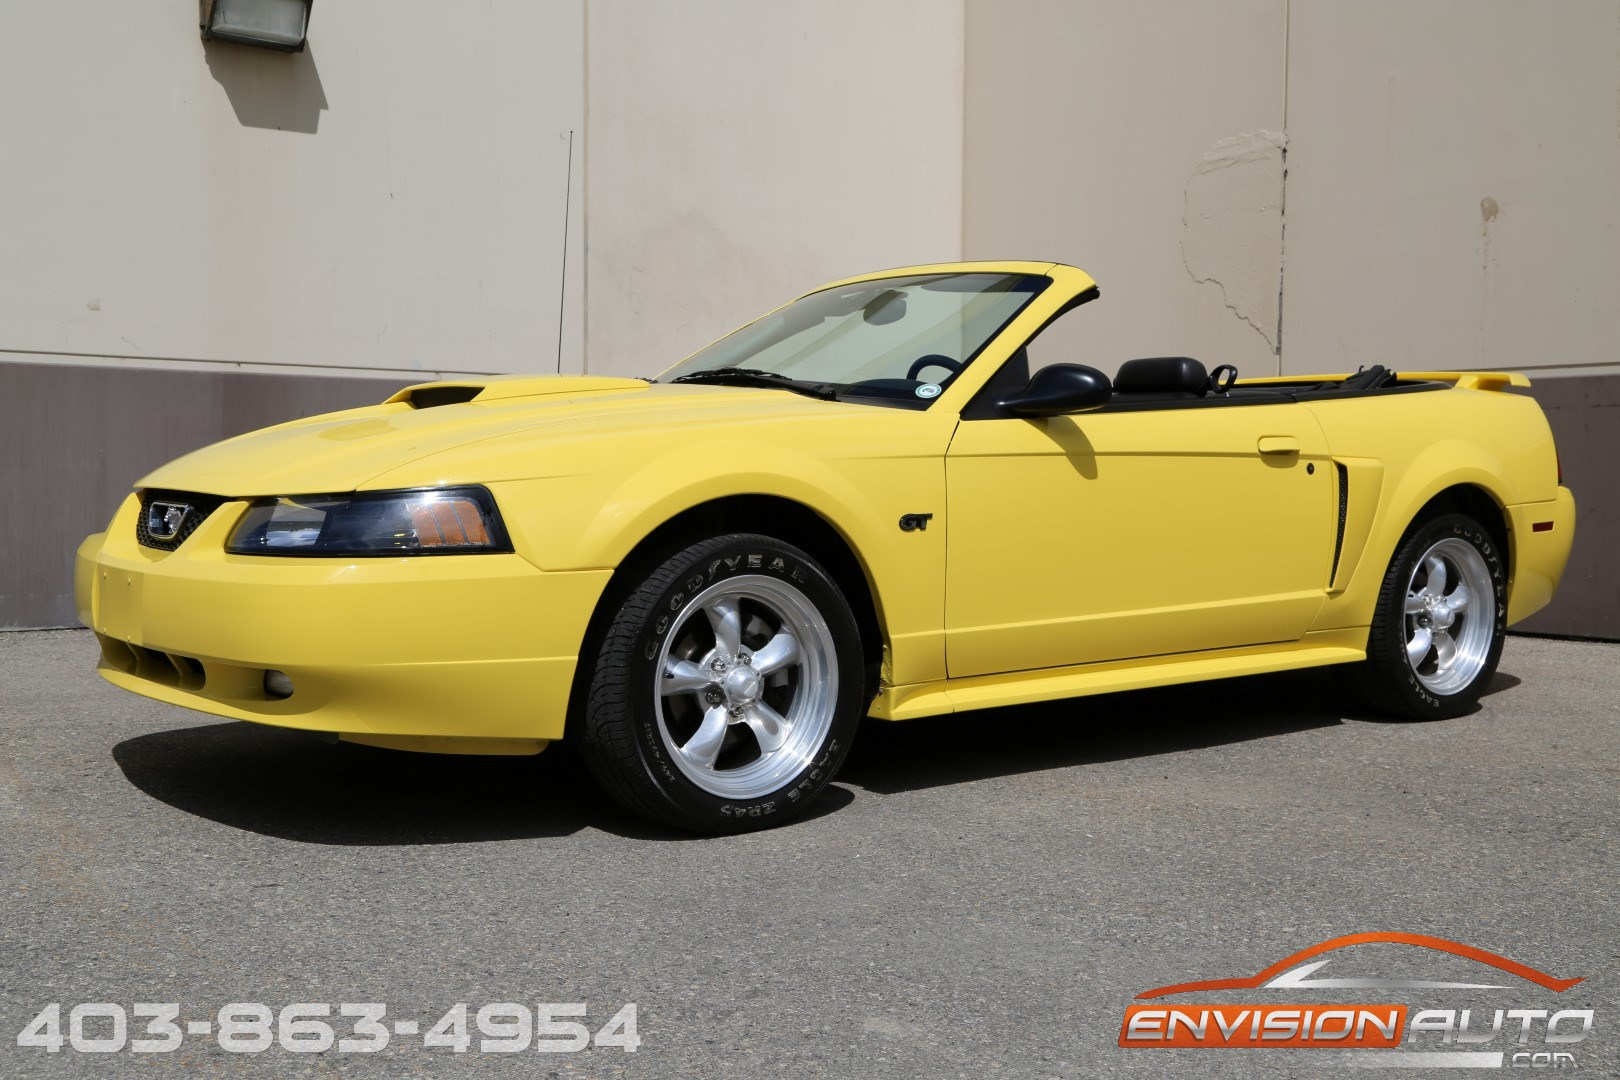 2002 Ford Mustang Gt Convertible 1 Owner Only 8 000